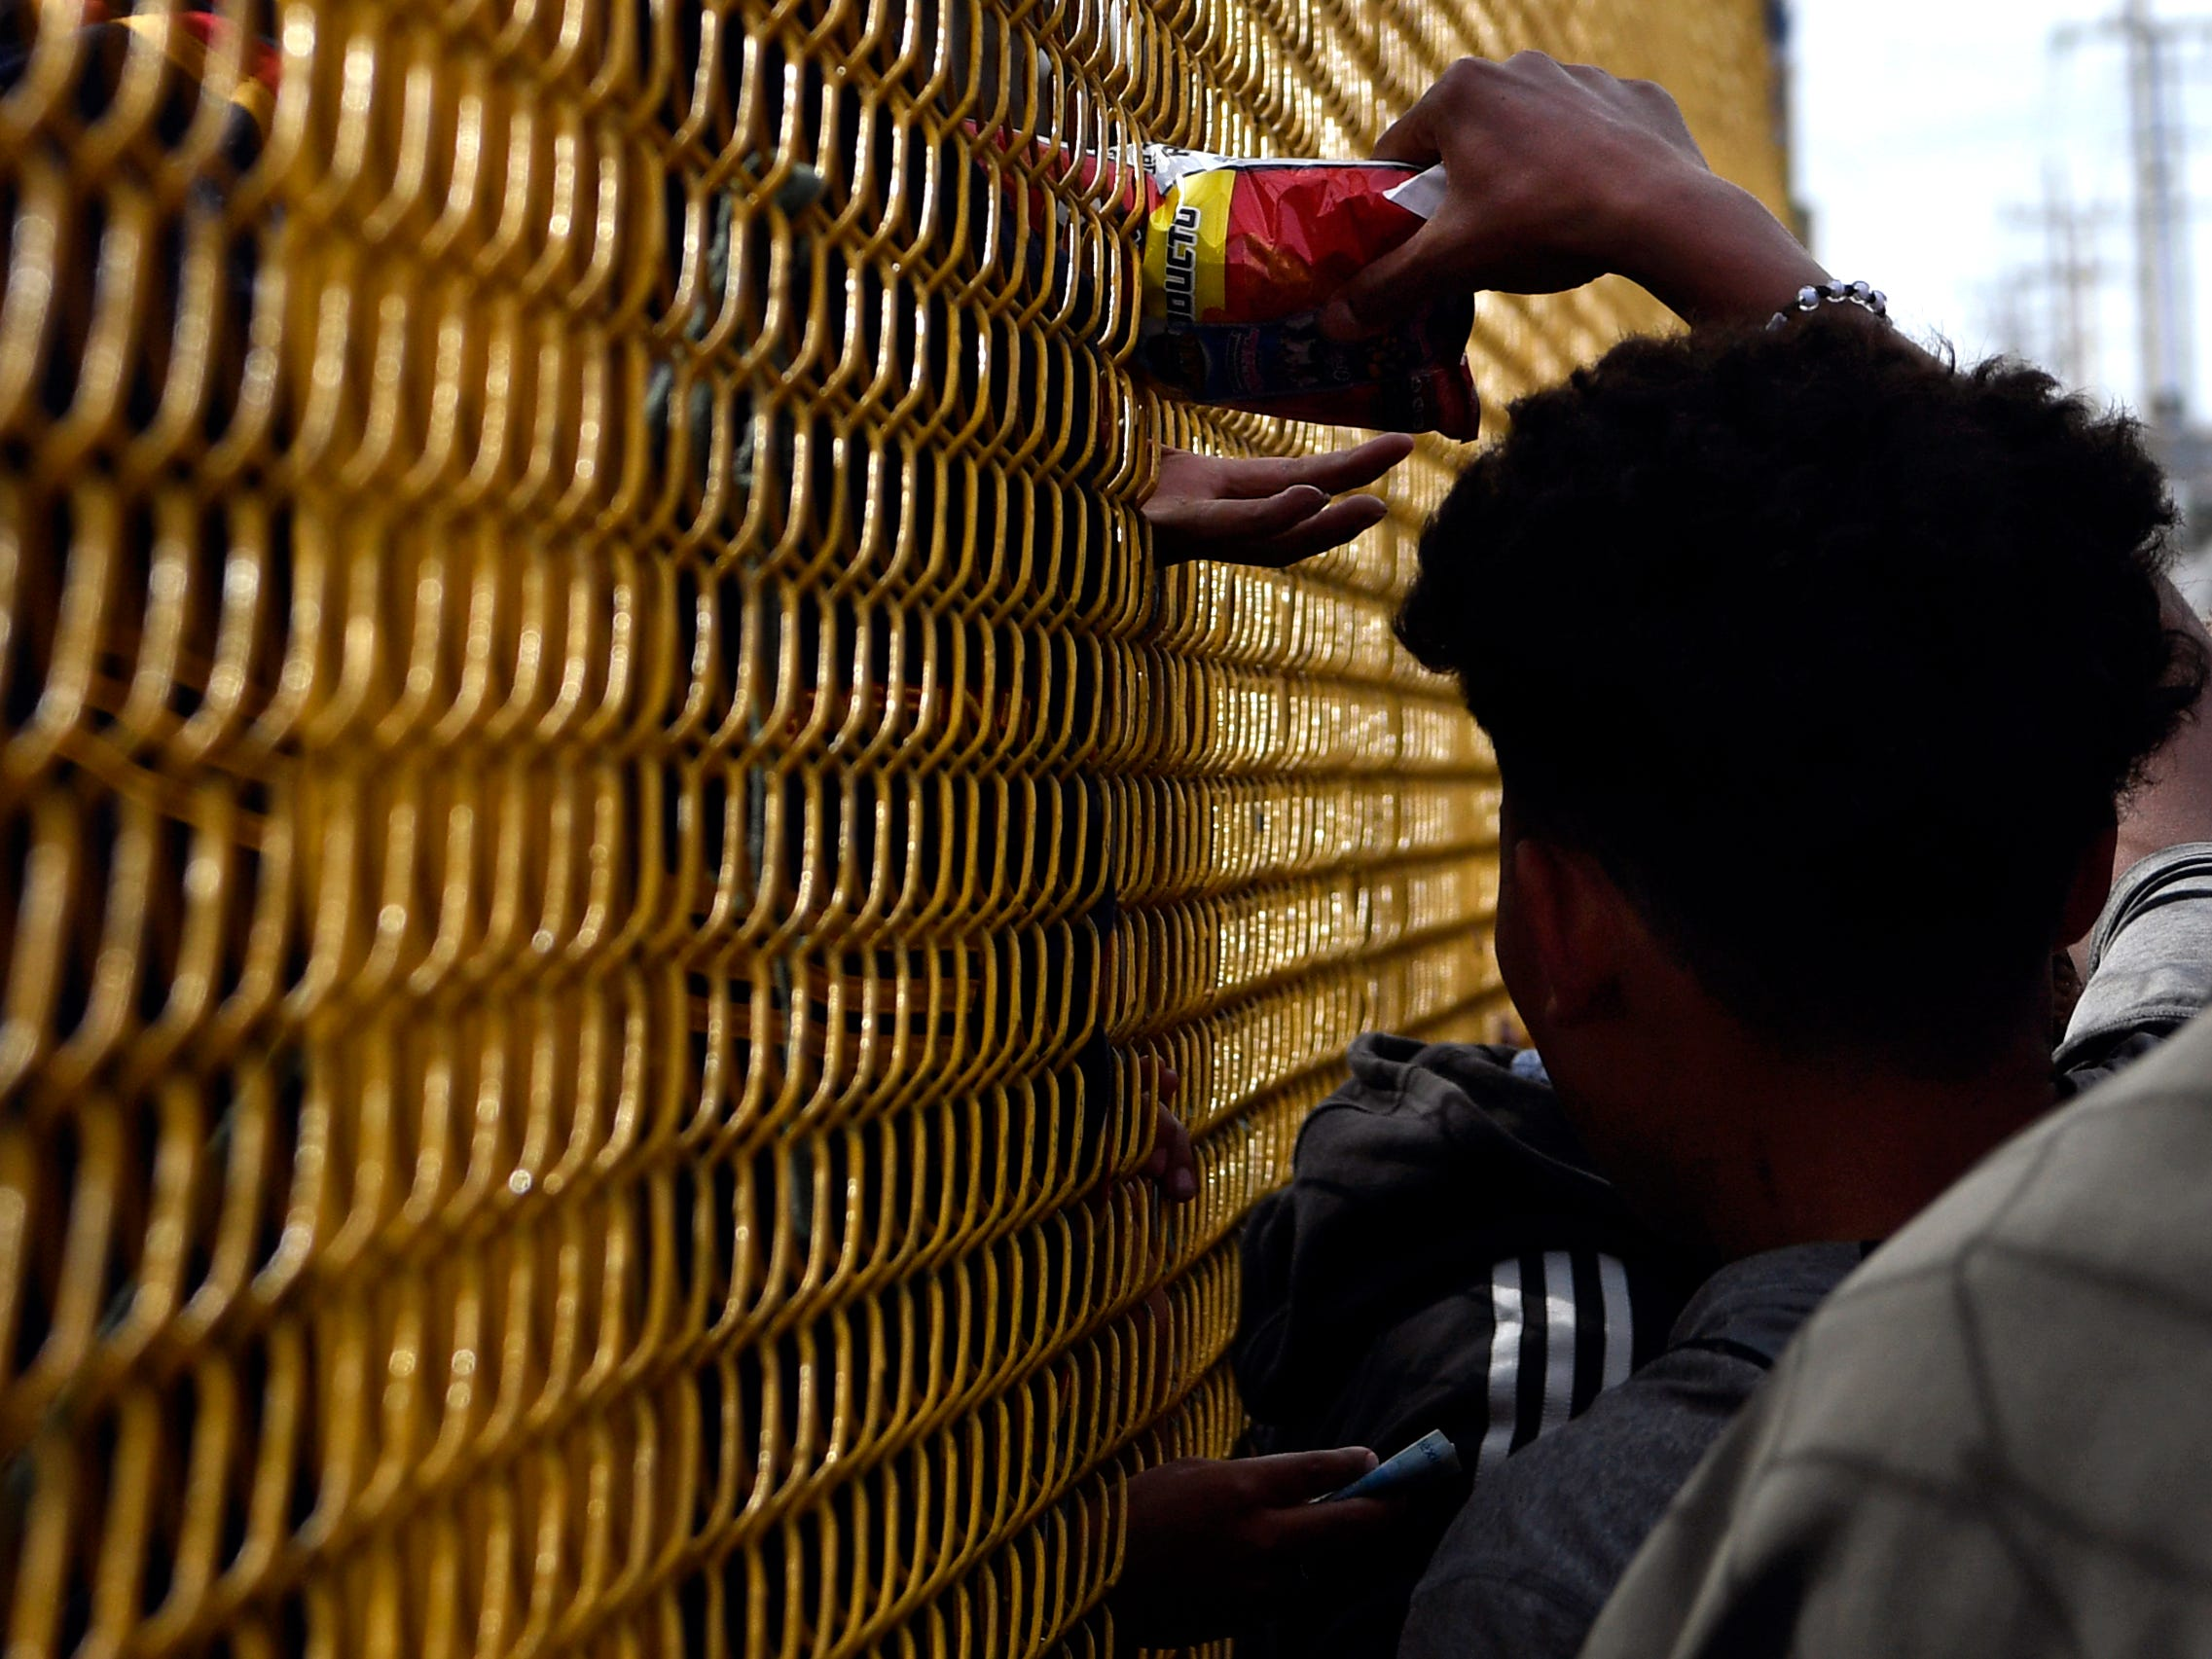 A man pushes a bag of potato chips through the chain link fence surrounding the Migrant Hostel Thursday Feb. 7, 2019 in Piedras Negras, Mexico. Some inside the compound were allowed to go outside under supervision and purchase snacks from a trailer parked in front of the former factory.